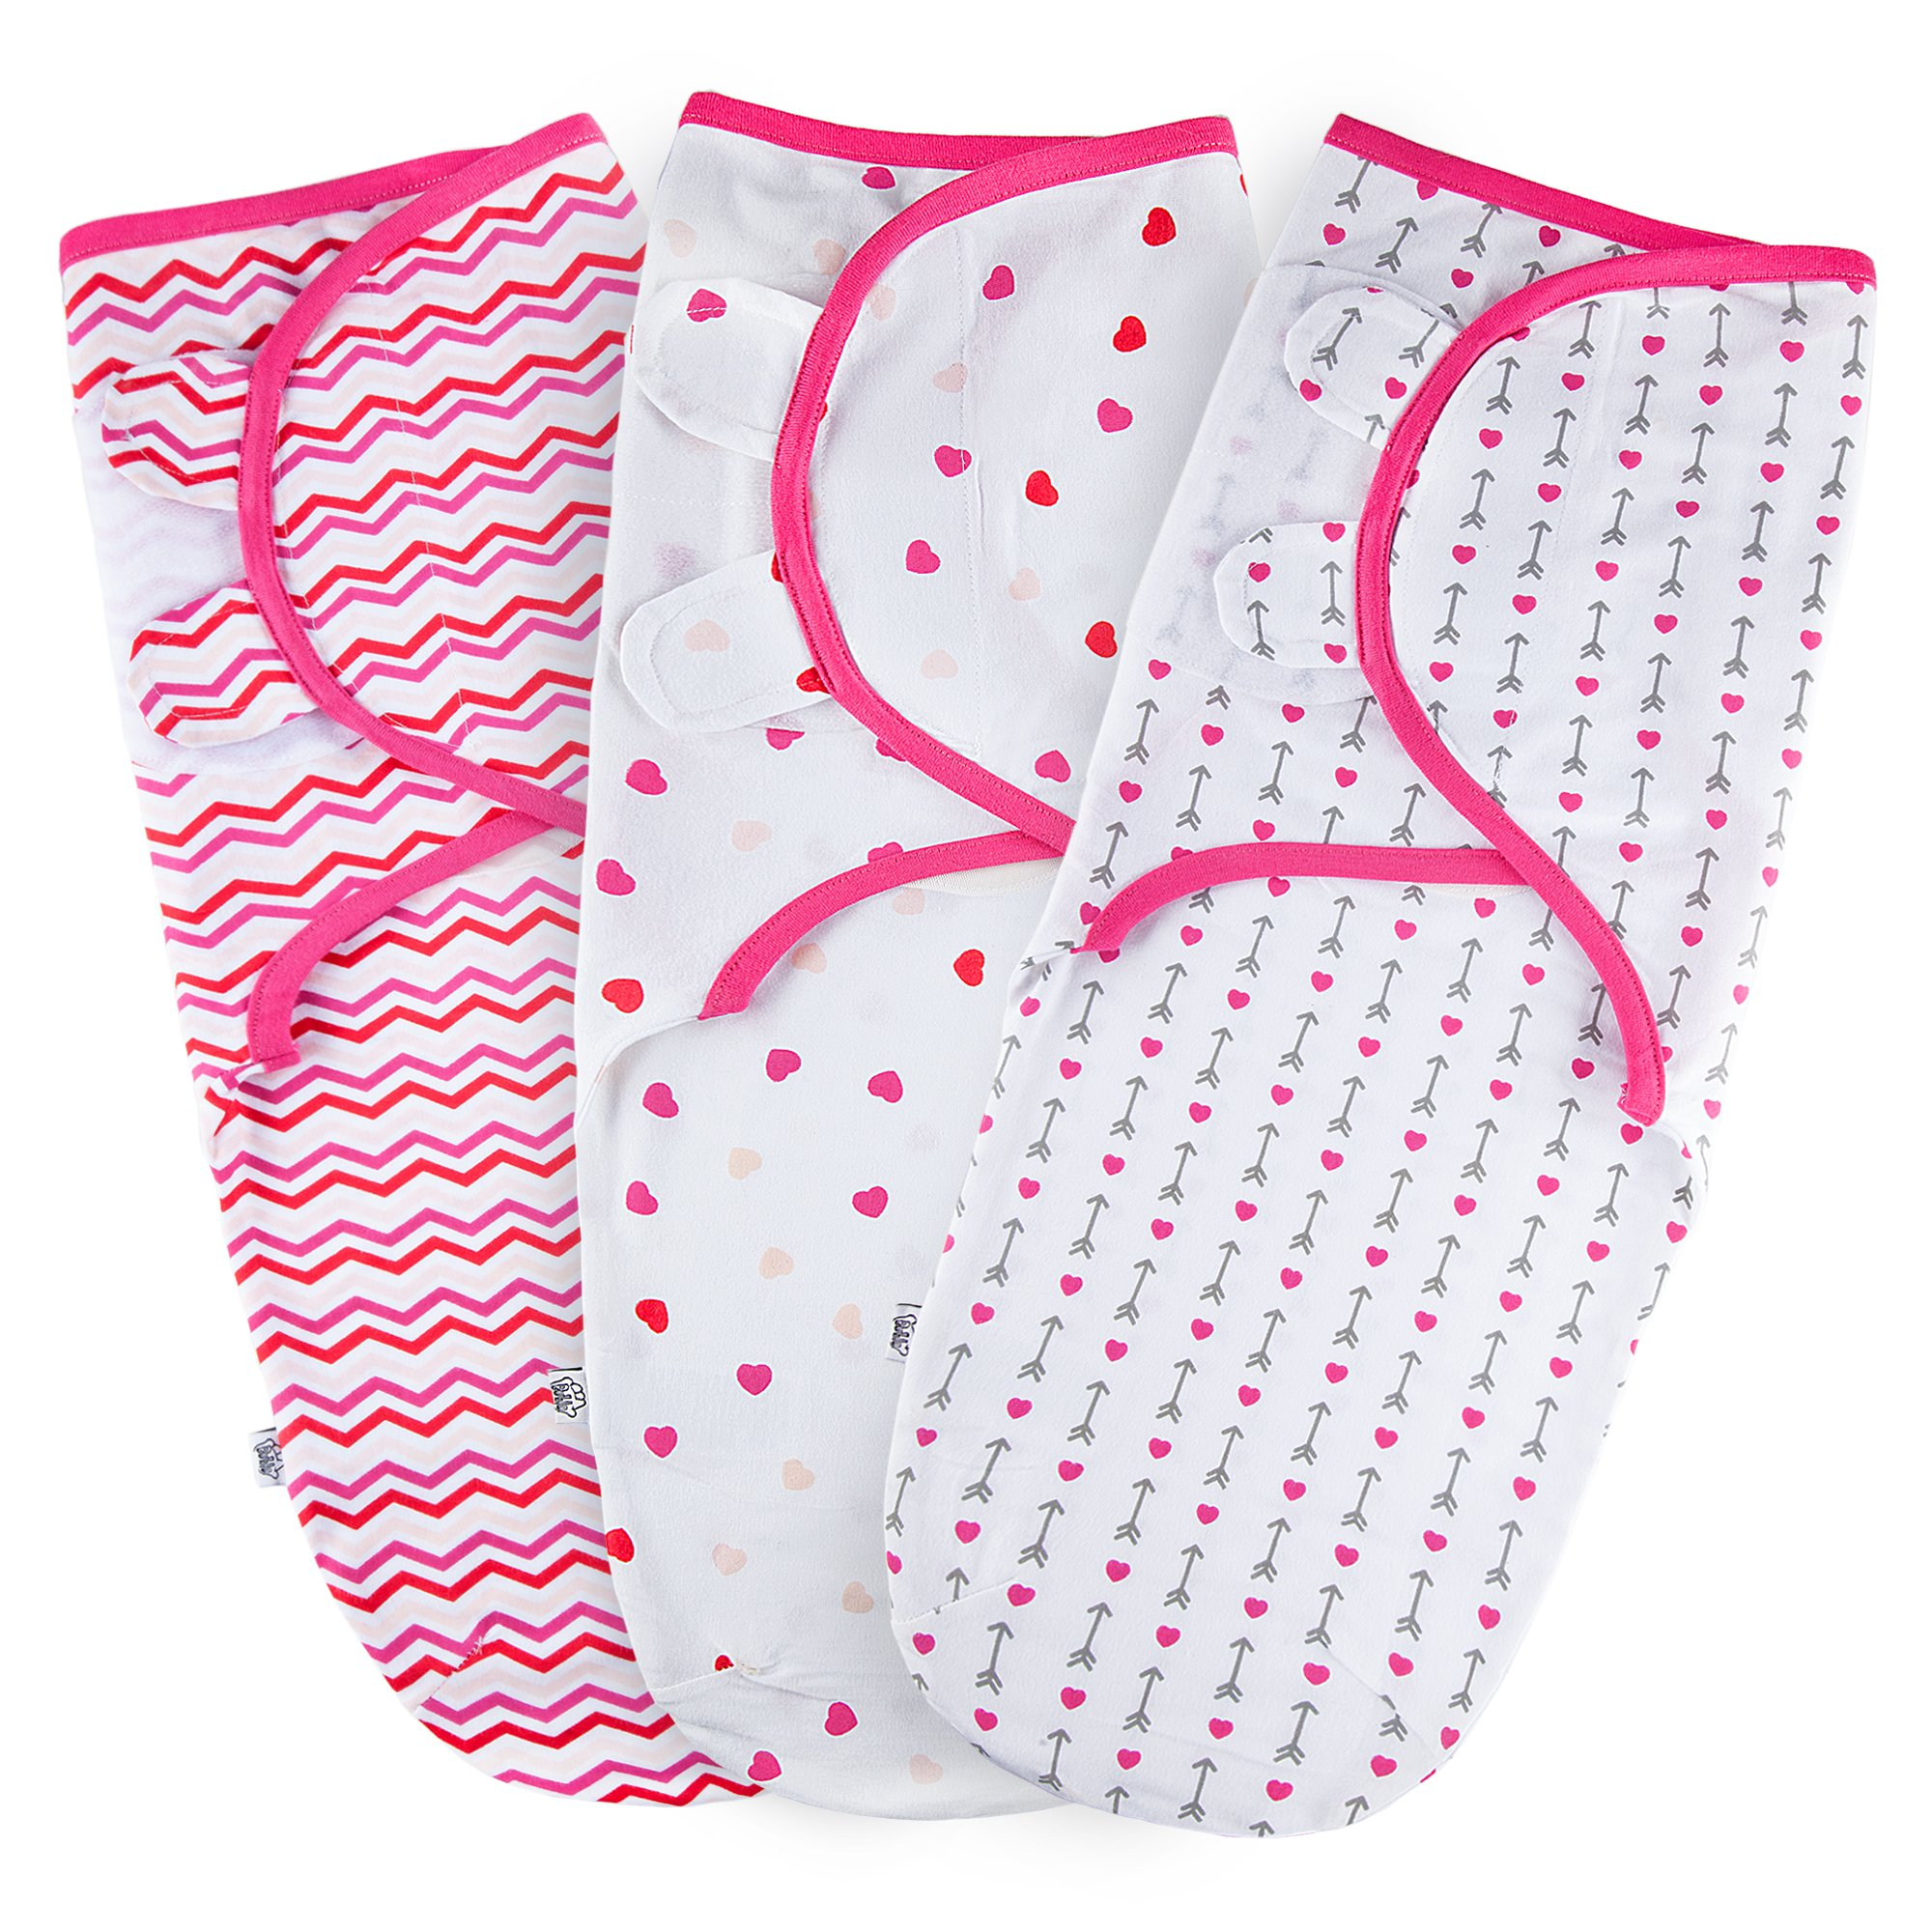 Baby Swaddle Wrap for Newborn Girls   3 Set of Adjustable Infant Blanket with Fastener Straps   Breathable Soft Cotton   0-3 Month